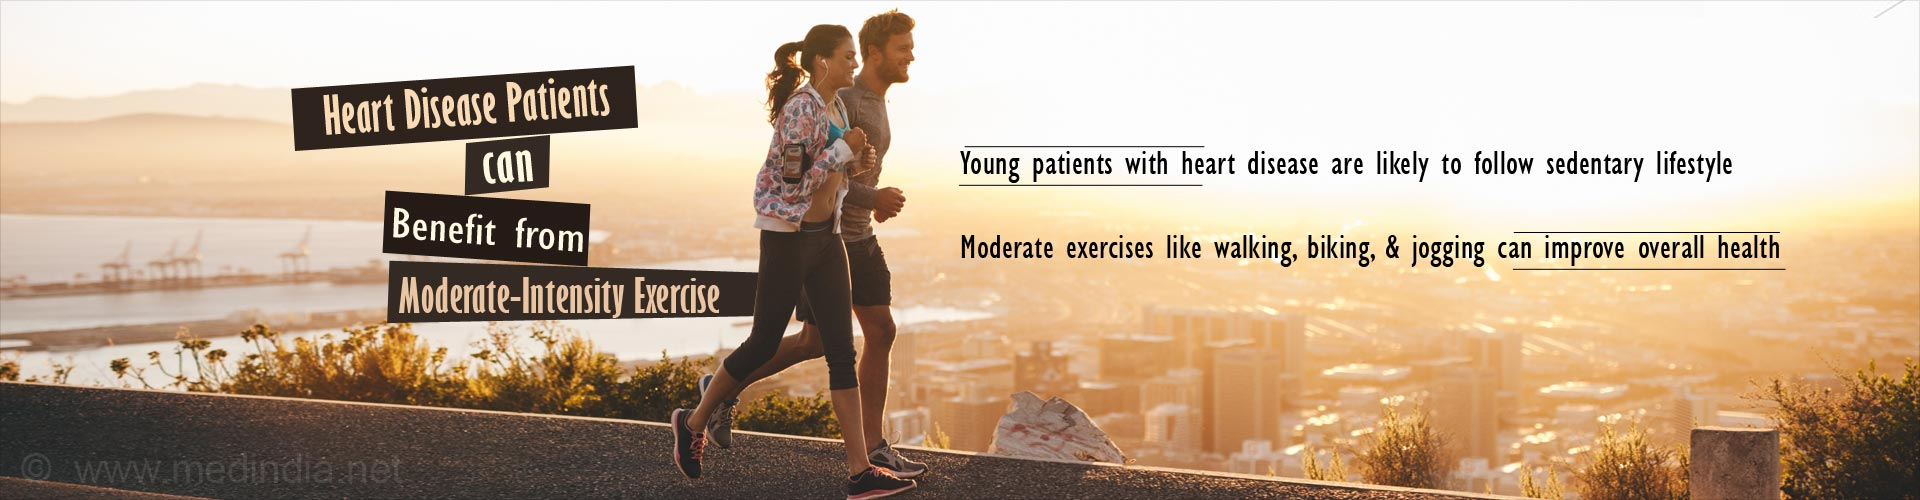 Moderate-Intensity Exercise Beneficial For Young Patients With Heart Disease